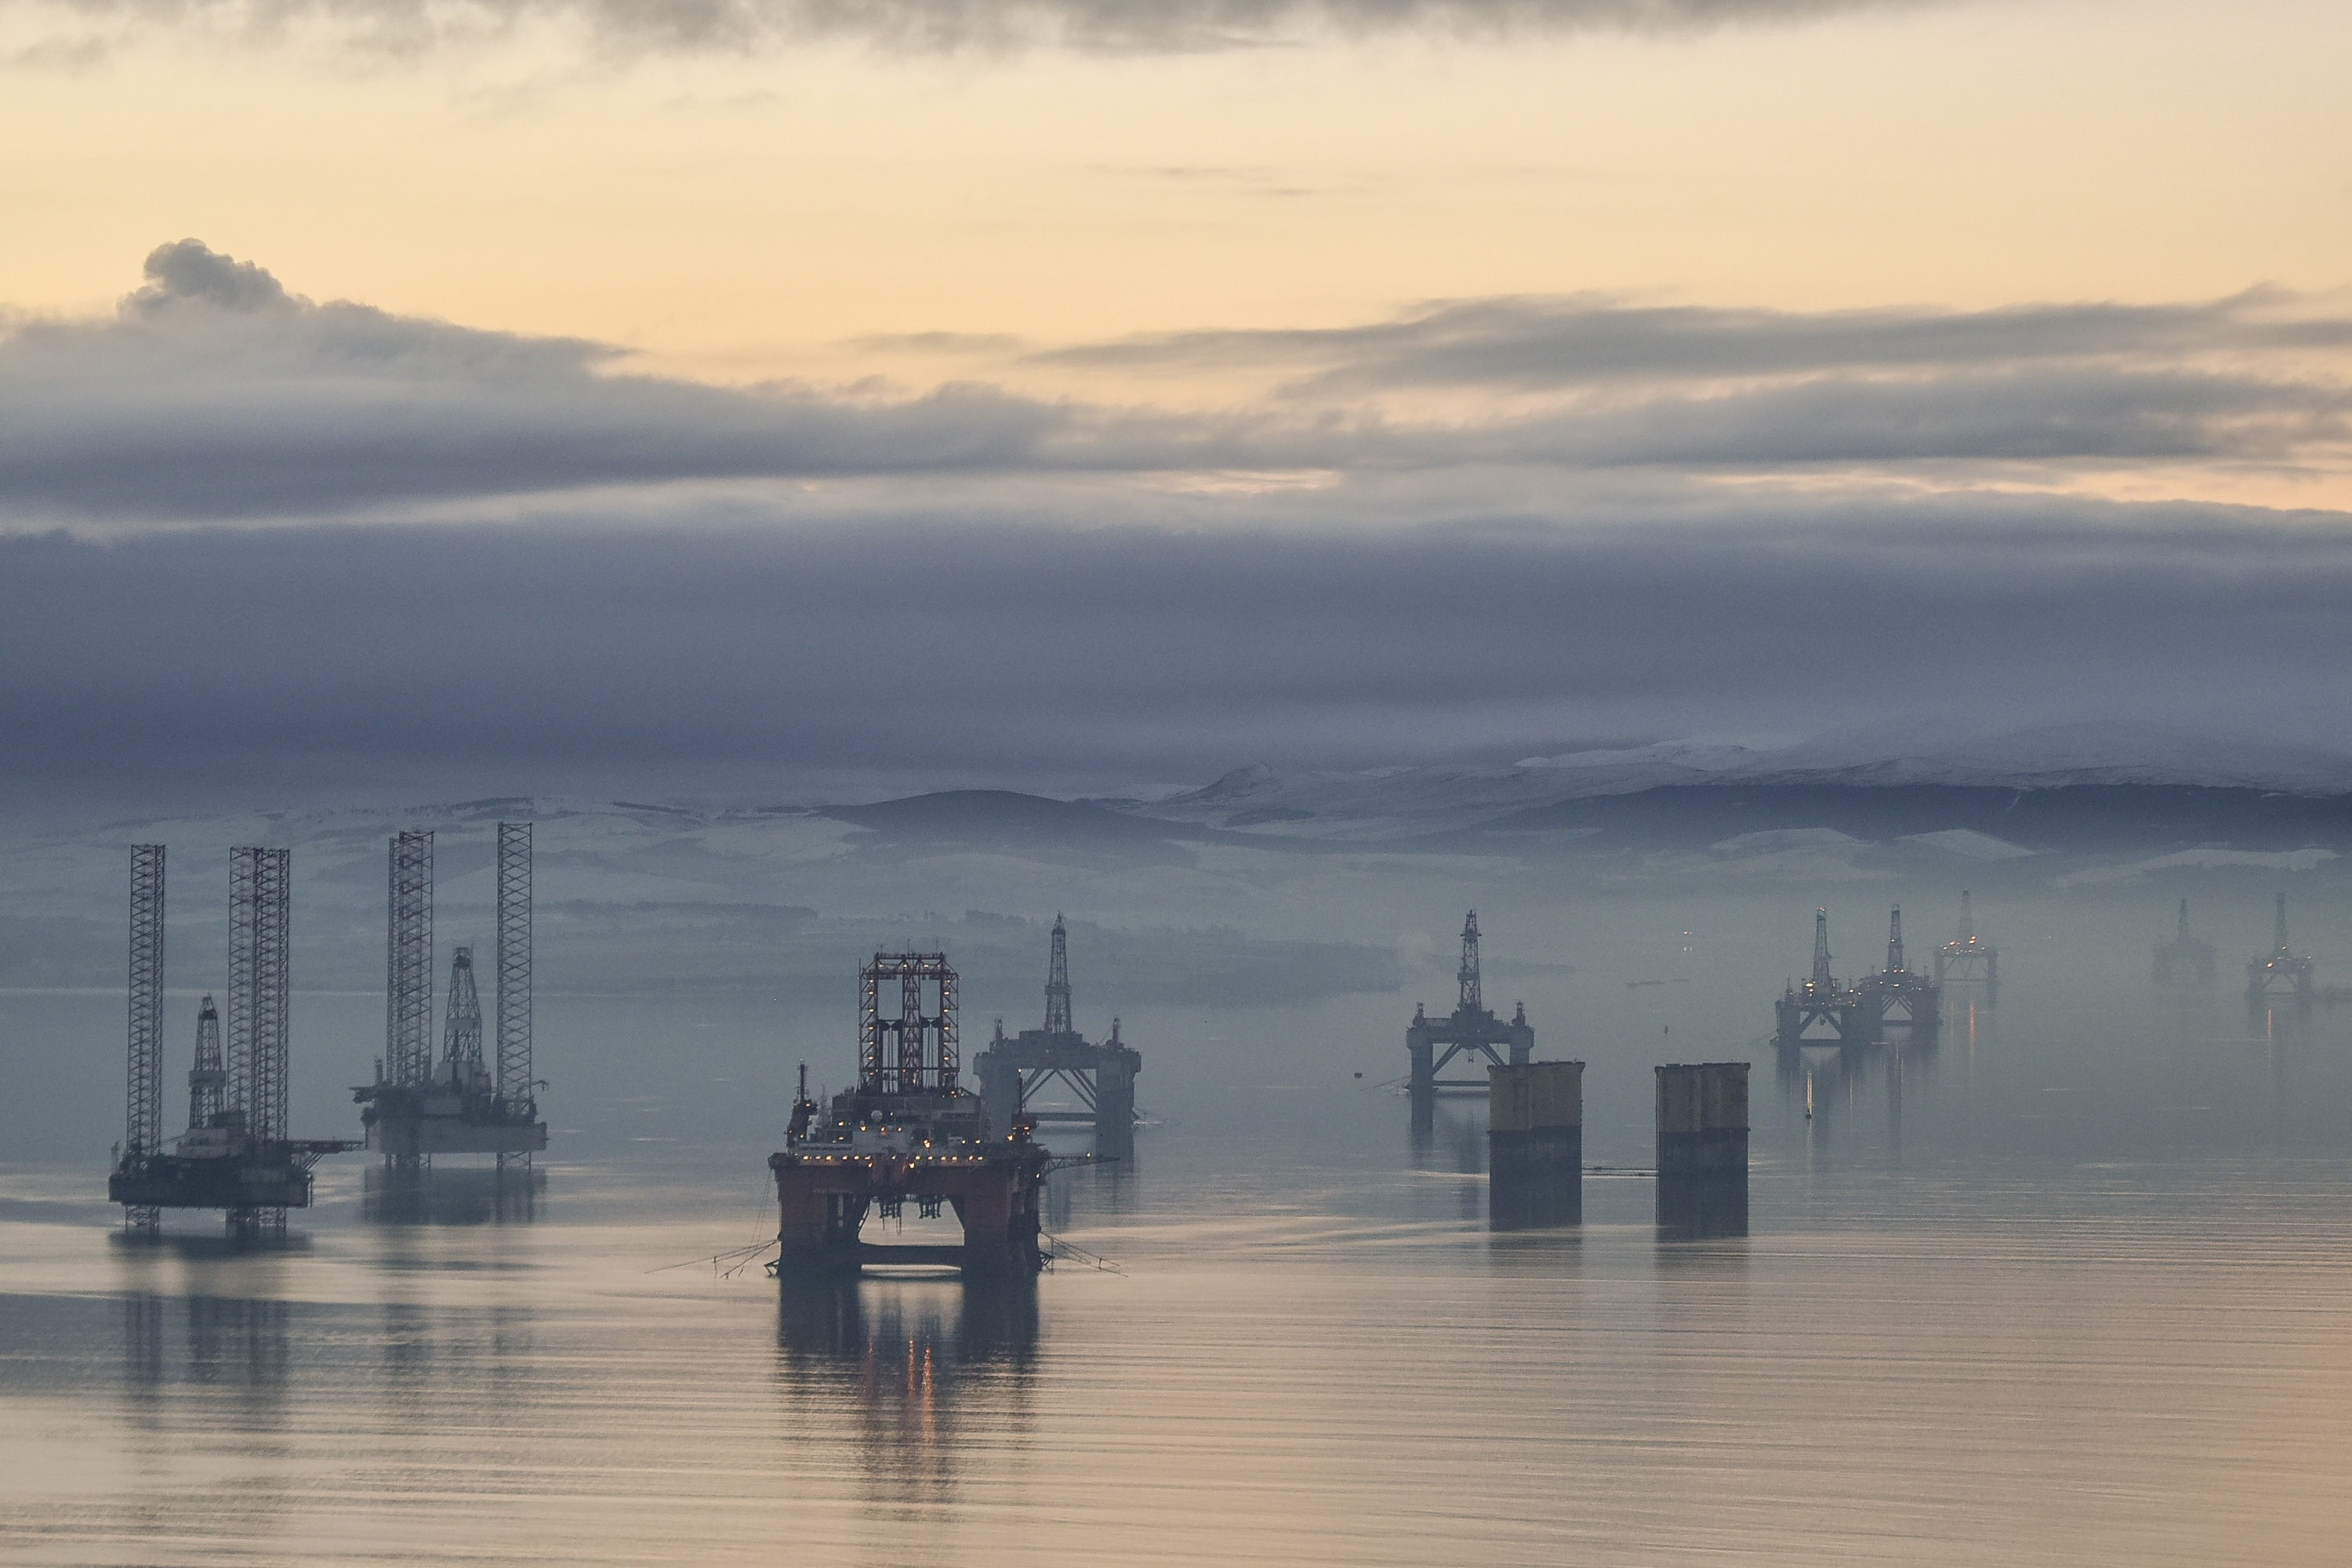 The Cromarty Firth